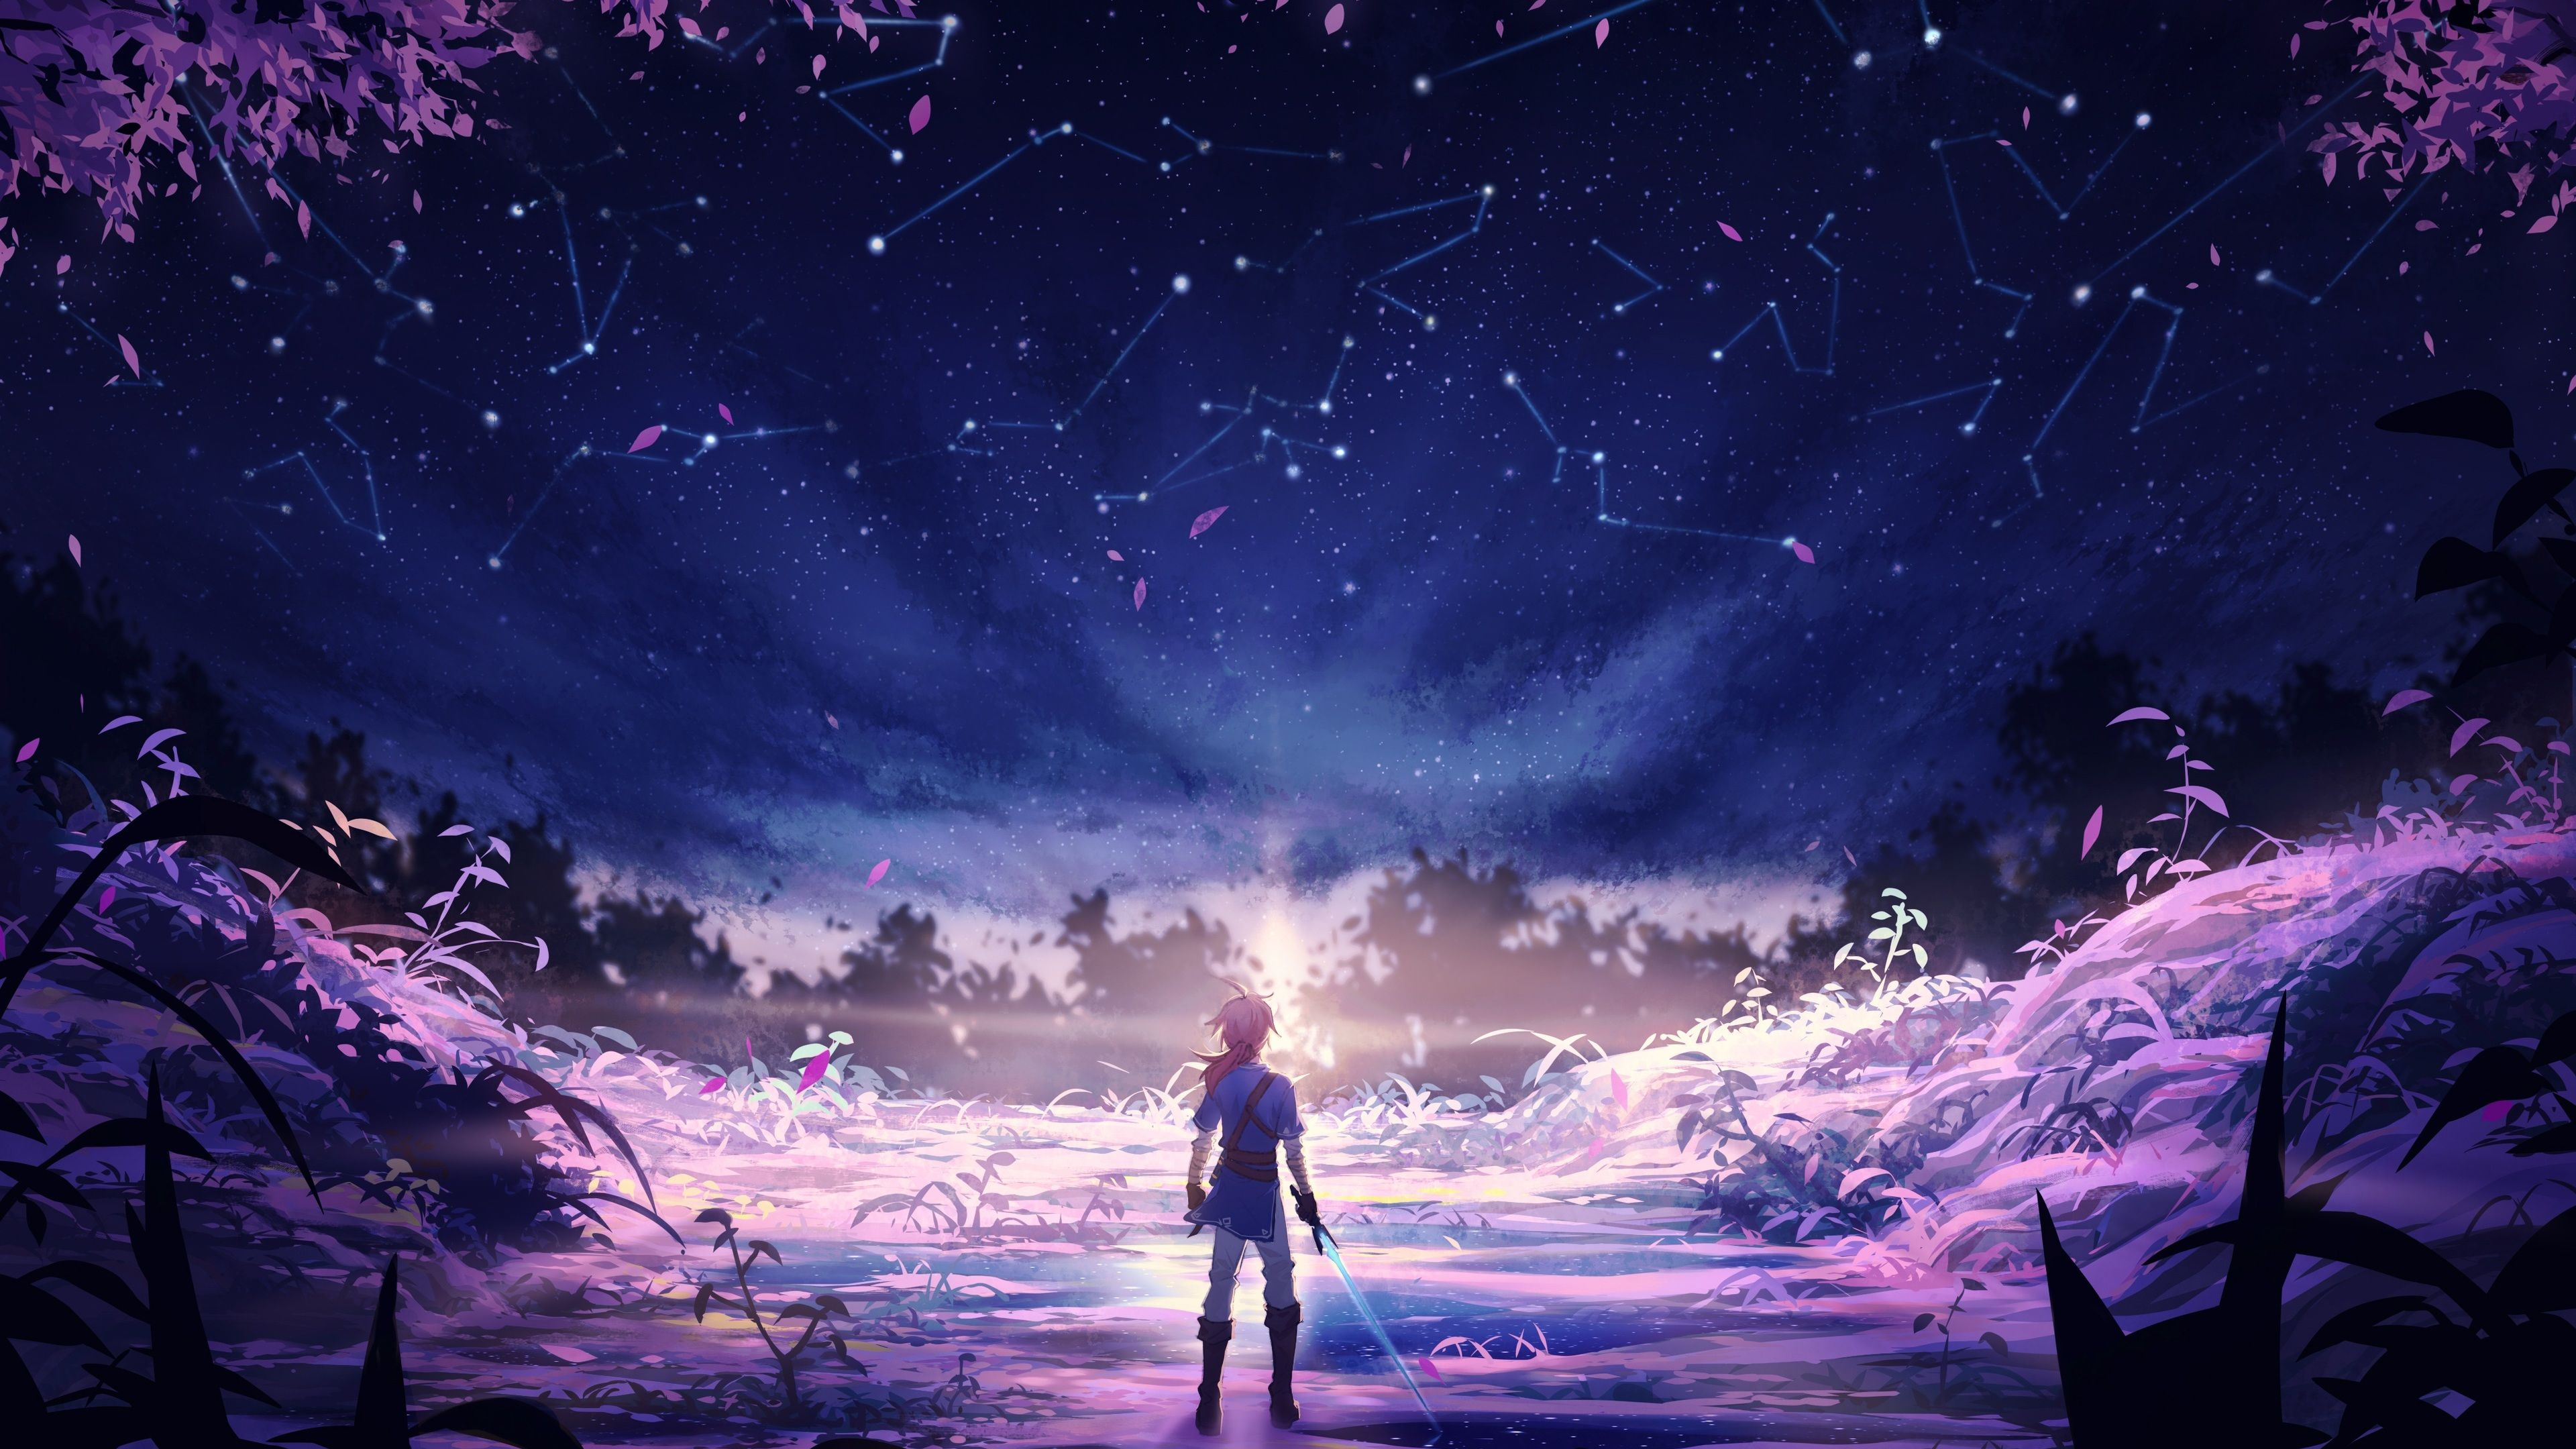 The Legend Of Zelda Breath Of The Wild Game Art 4k The Legend Of Zelda Wallpapers Hd Wallpapers Gam In 2020 Legend Of Zelda Breath Legend Of Zelda Breath Of The Wild